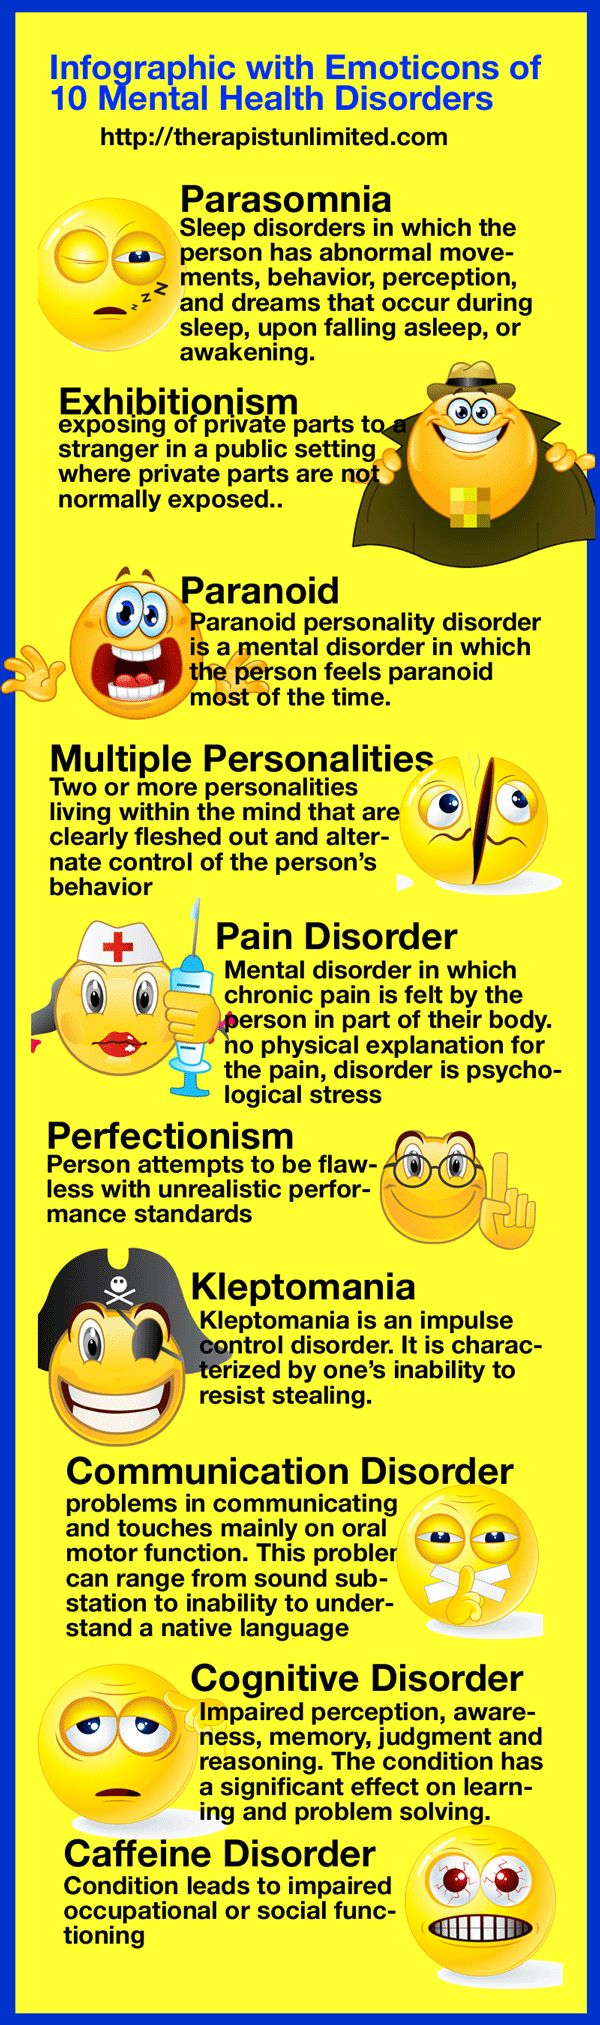 10 Mental Health Disorders Shown As Emoticons - While this infographic contains funny and informative information on Mental Health Disorders, our goal is to help create awareness of Mental Health Issues and Disorders.